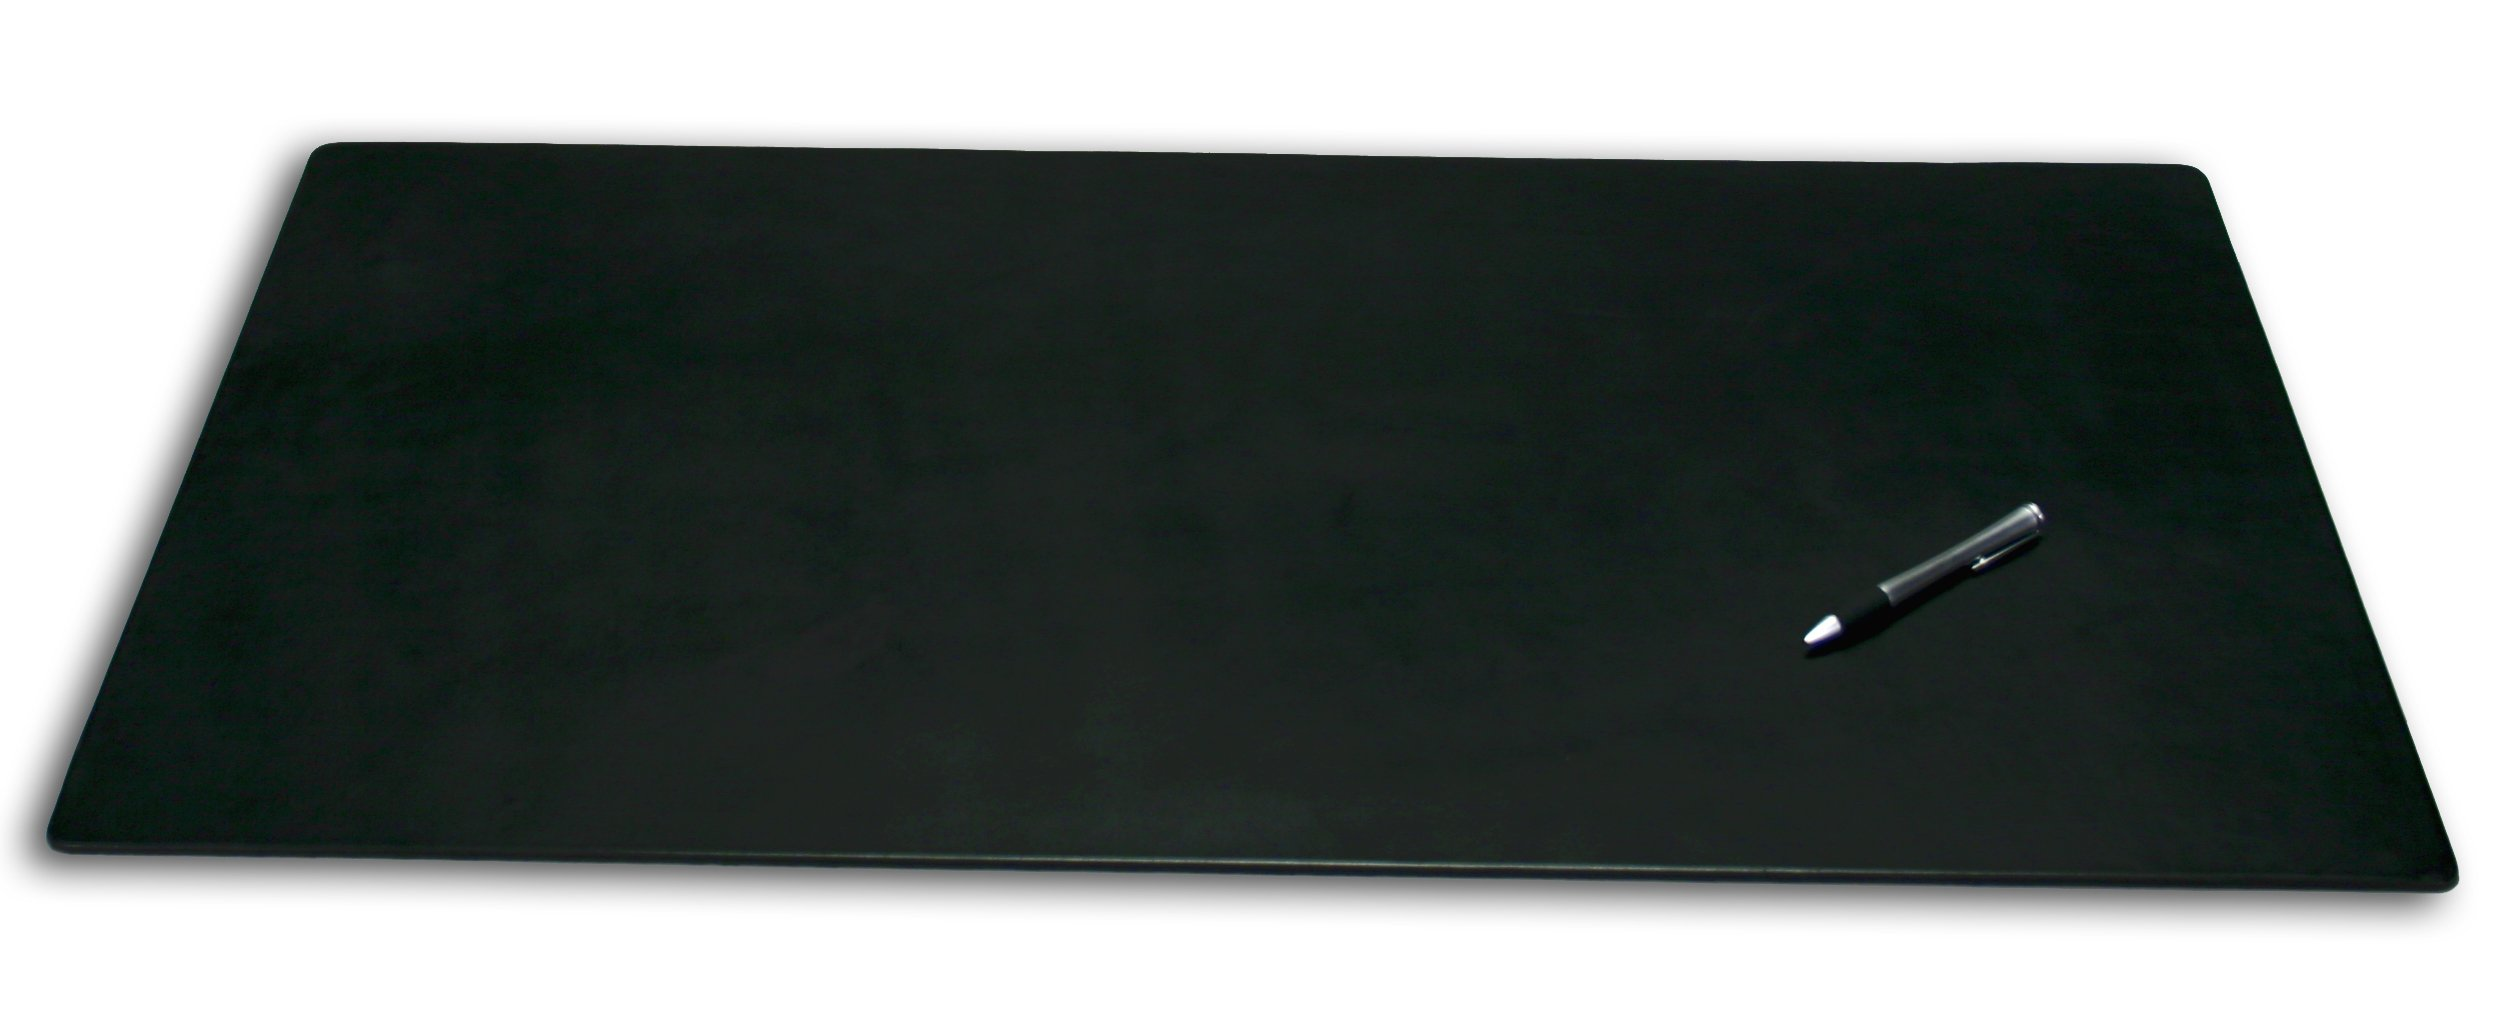 Dacasso Leatherette Office Desk Pad, 38 by 24-Inch, Black